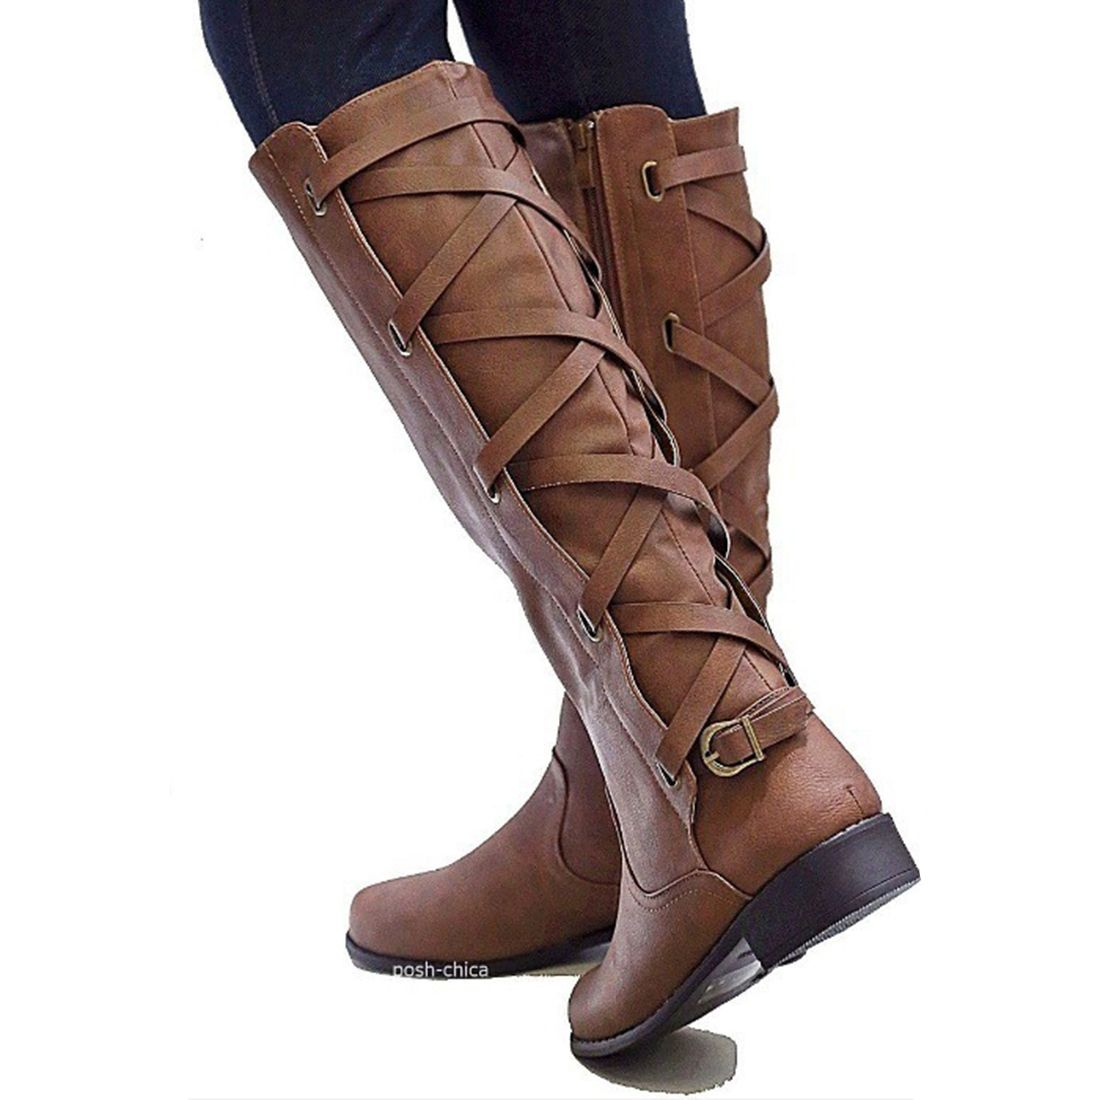 Womens Western Ankle Bootie Lace up Mid Calf Combat Zipper Boot Knee High Fashion Motorcycle Riding Boots